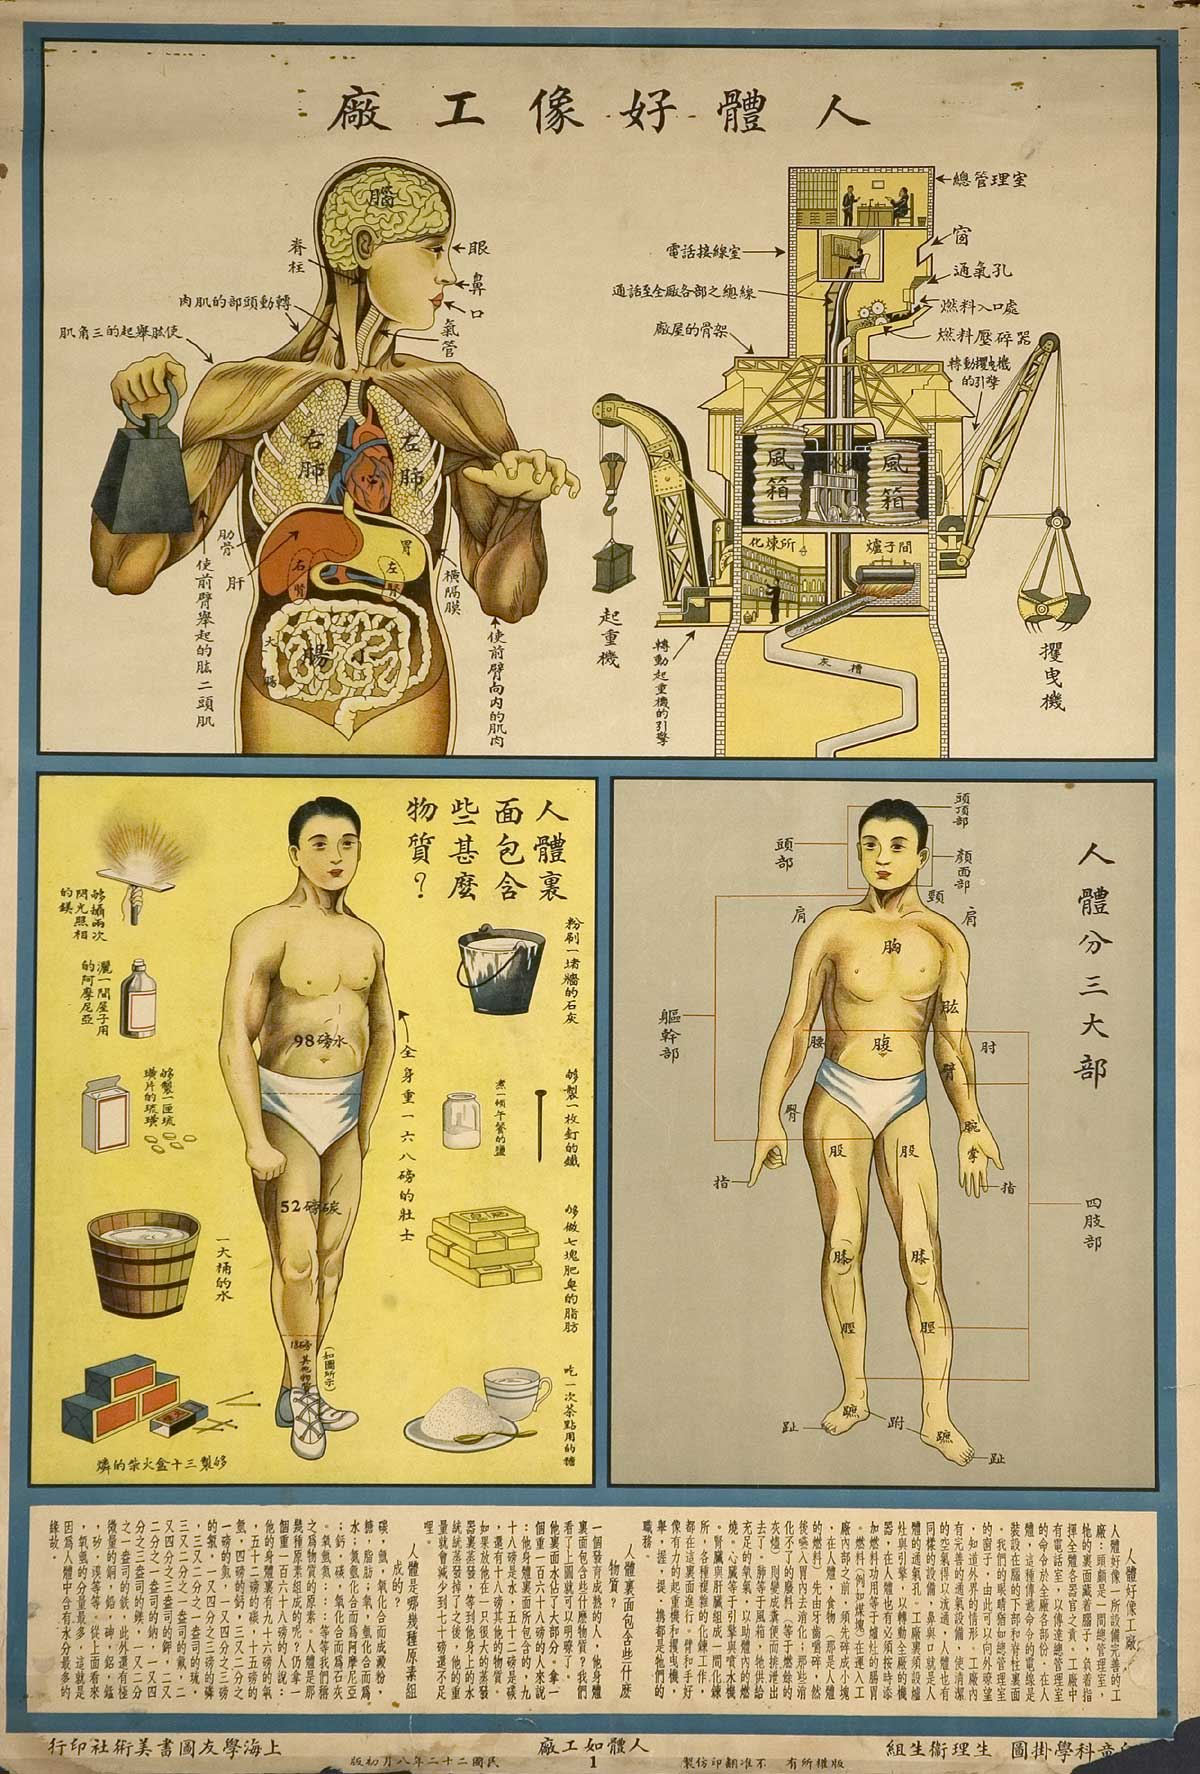 Chinese Public Health Posters: Understanding Human Body